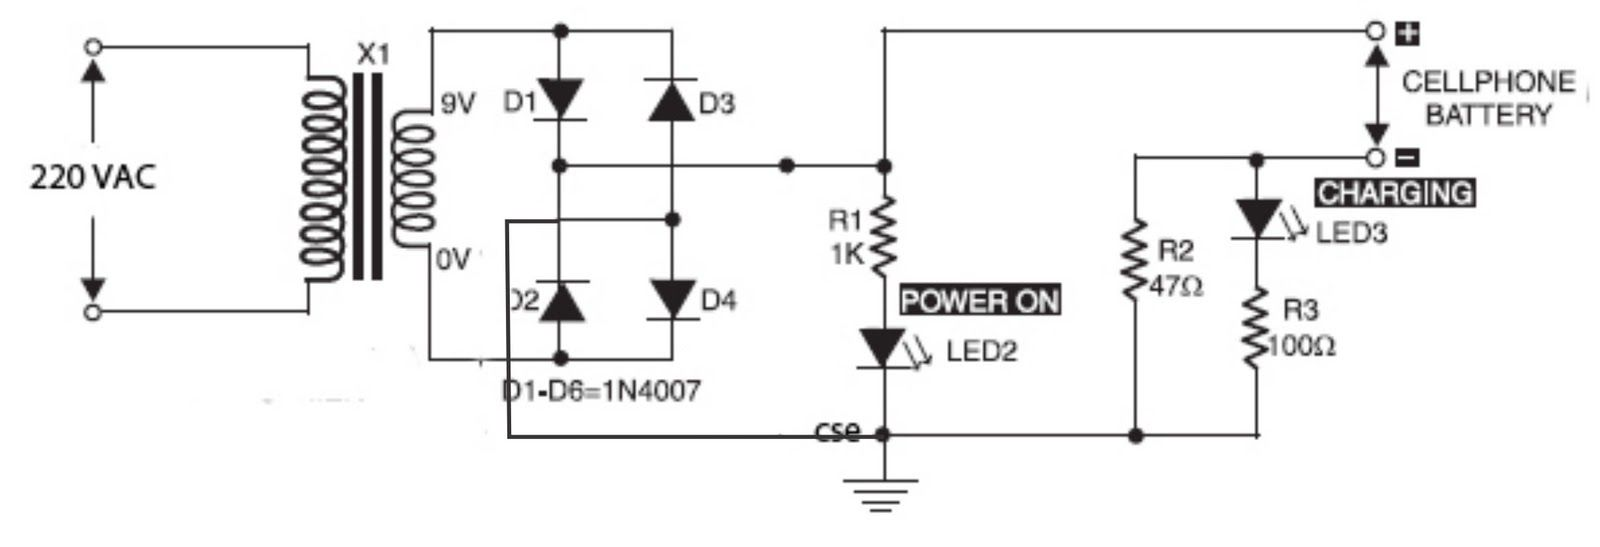 Phone Battery Charger Circuit Electronics Solar Can Charge 12v Lead Acid Or Sla